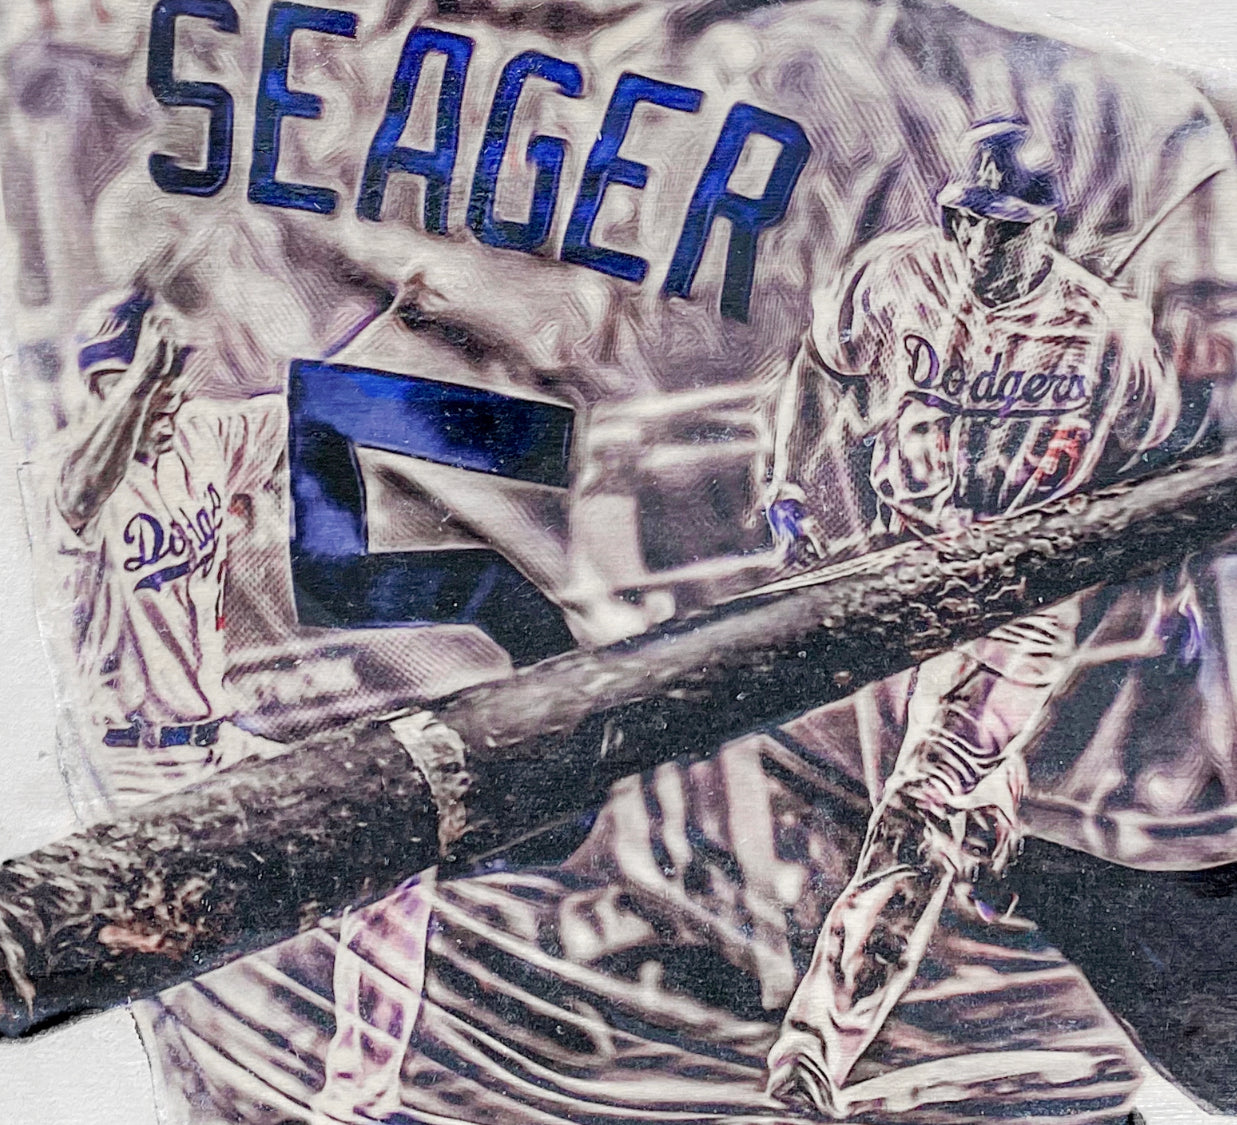 """Seager"" (Corey Seager) - Officially Licensed MLB Print - Limited Release"